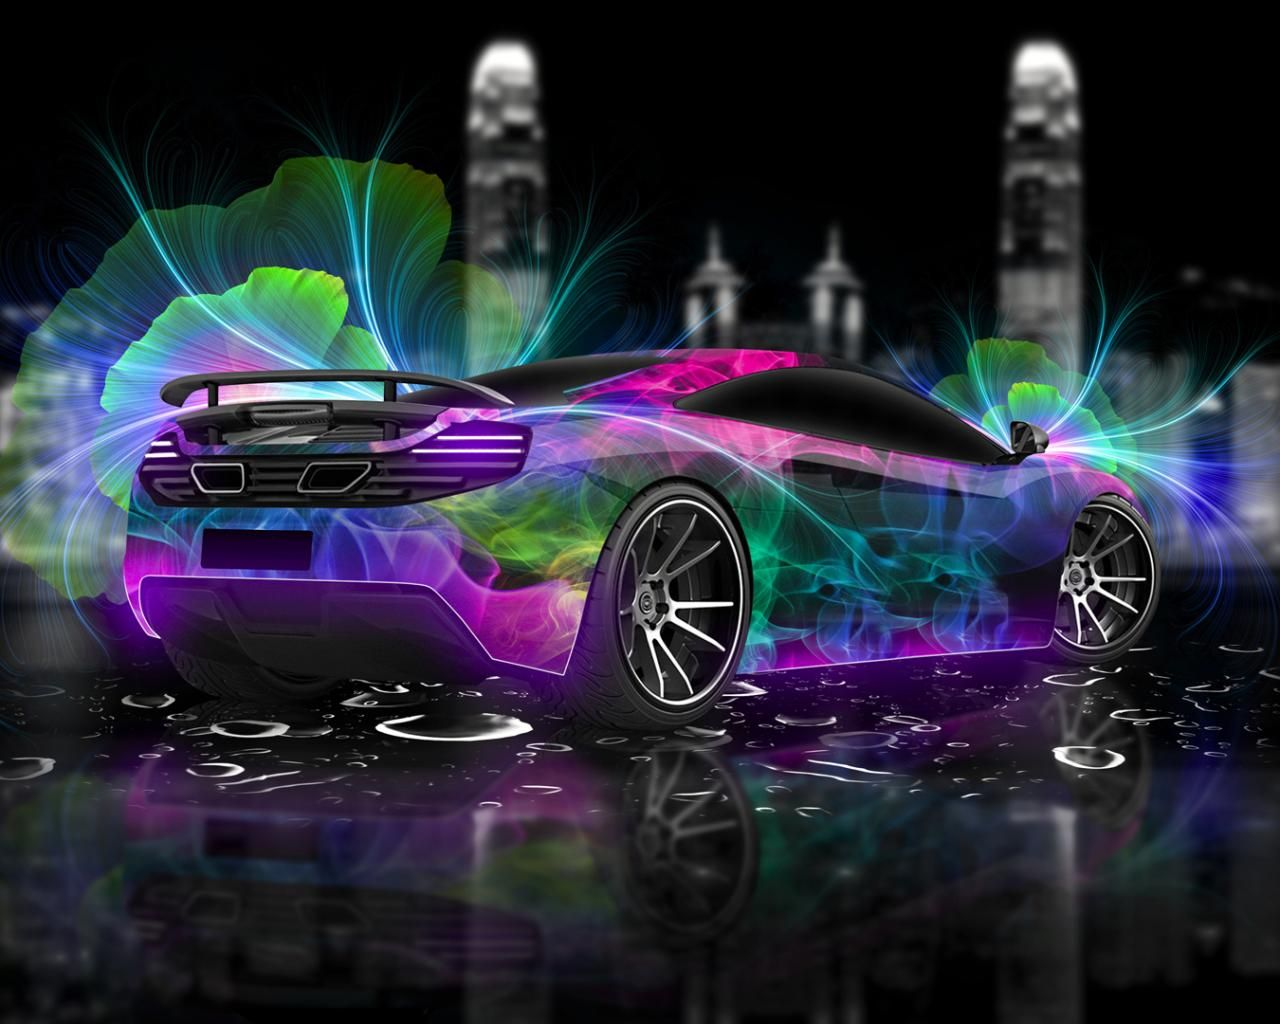 Cool Wallpapers Cool Wallpapers Cars Cool Car Backgrounds